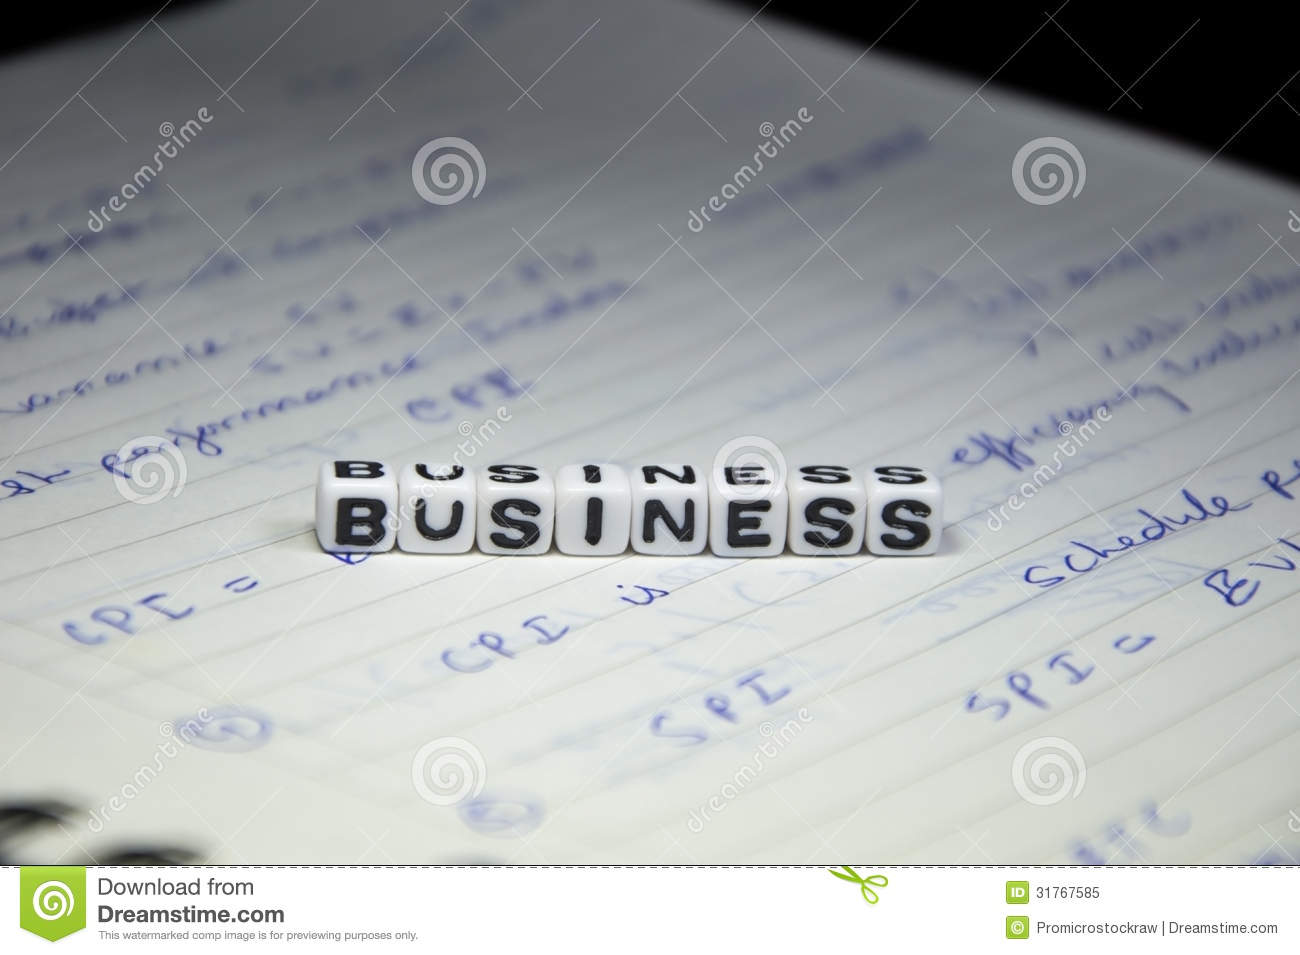 business management notebook 5 days ago  business notebook: senior living apartments open  the system for award  management after it was hacked from 11:30 am to 12:30 pm aug.